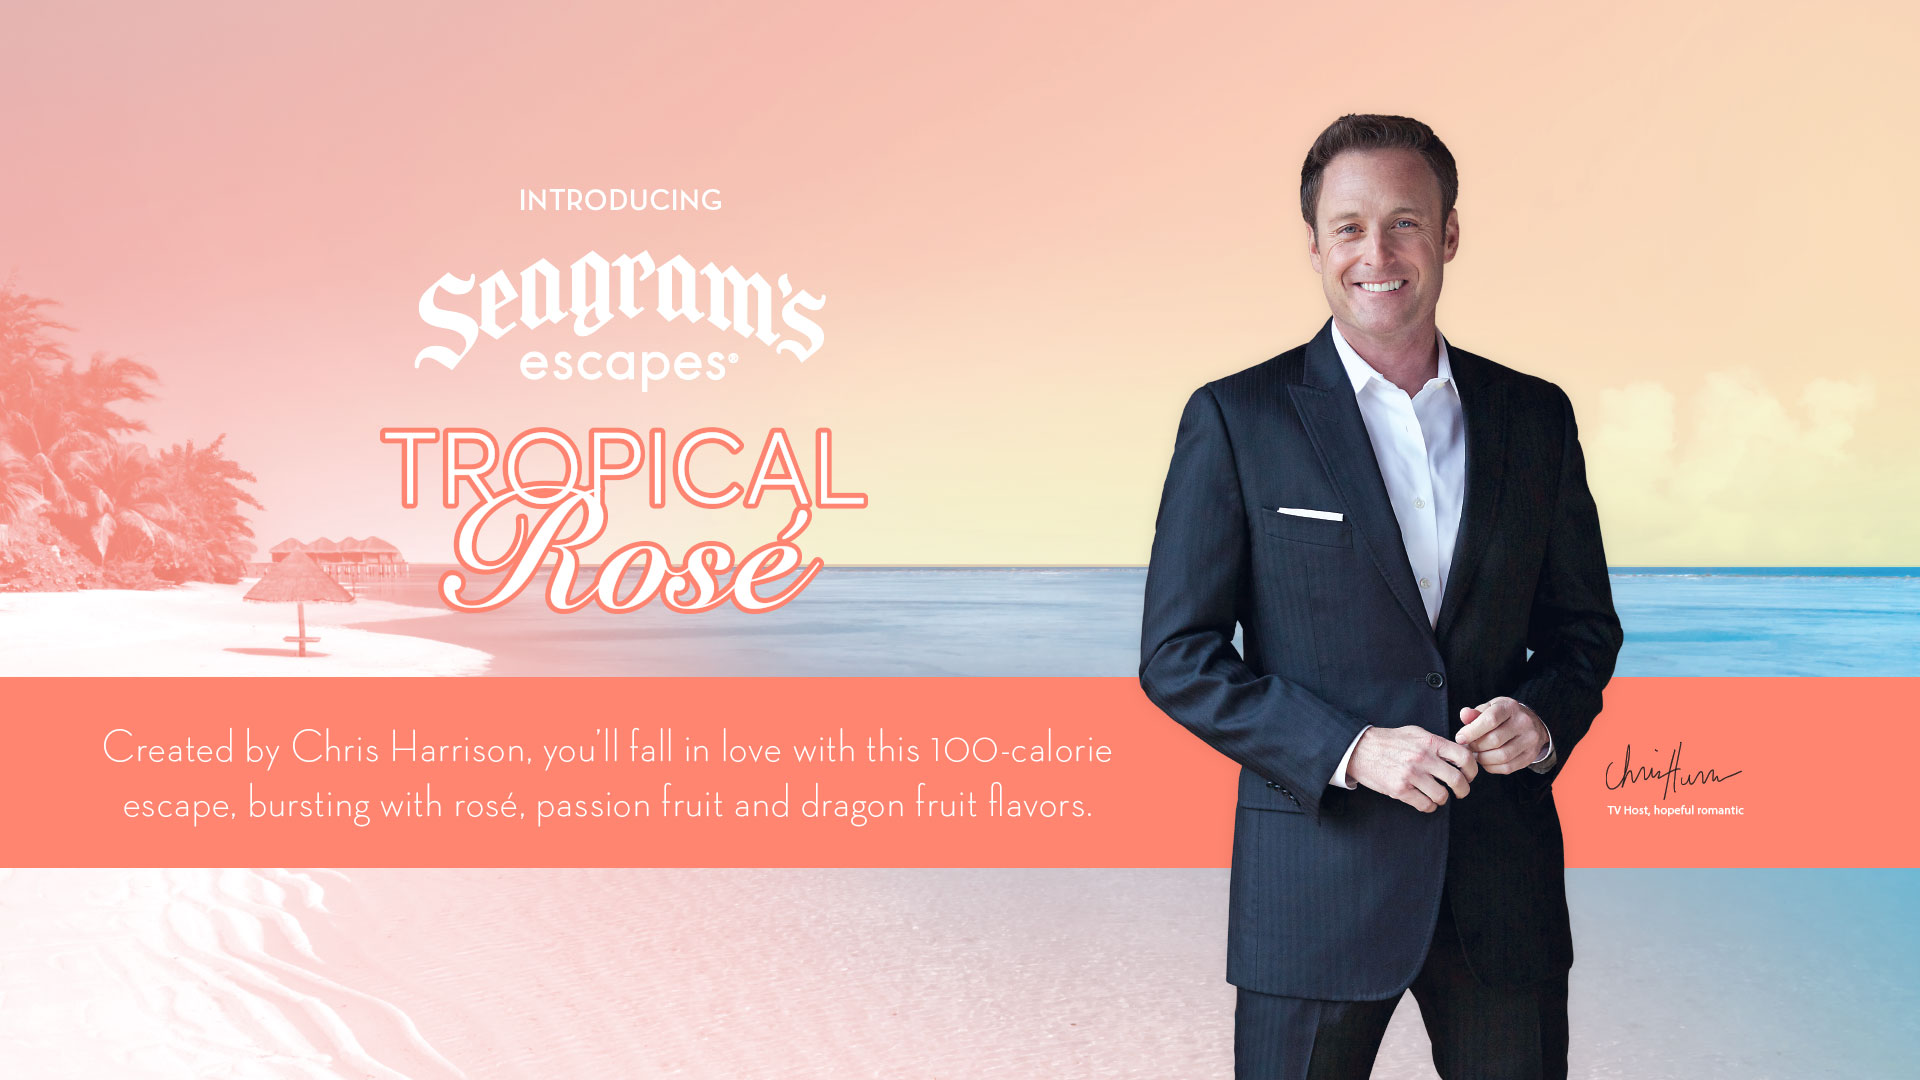 Chris Harrison Tropical Rose